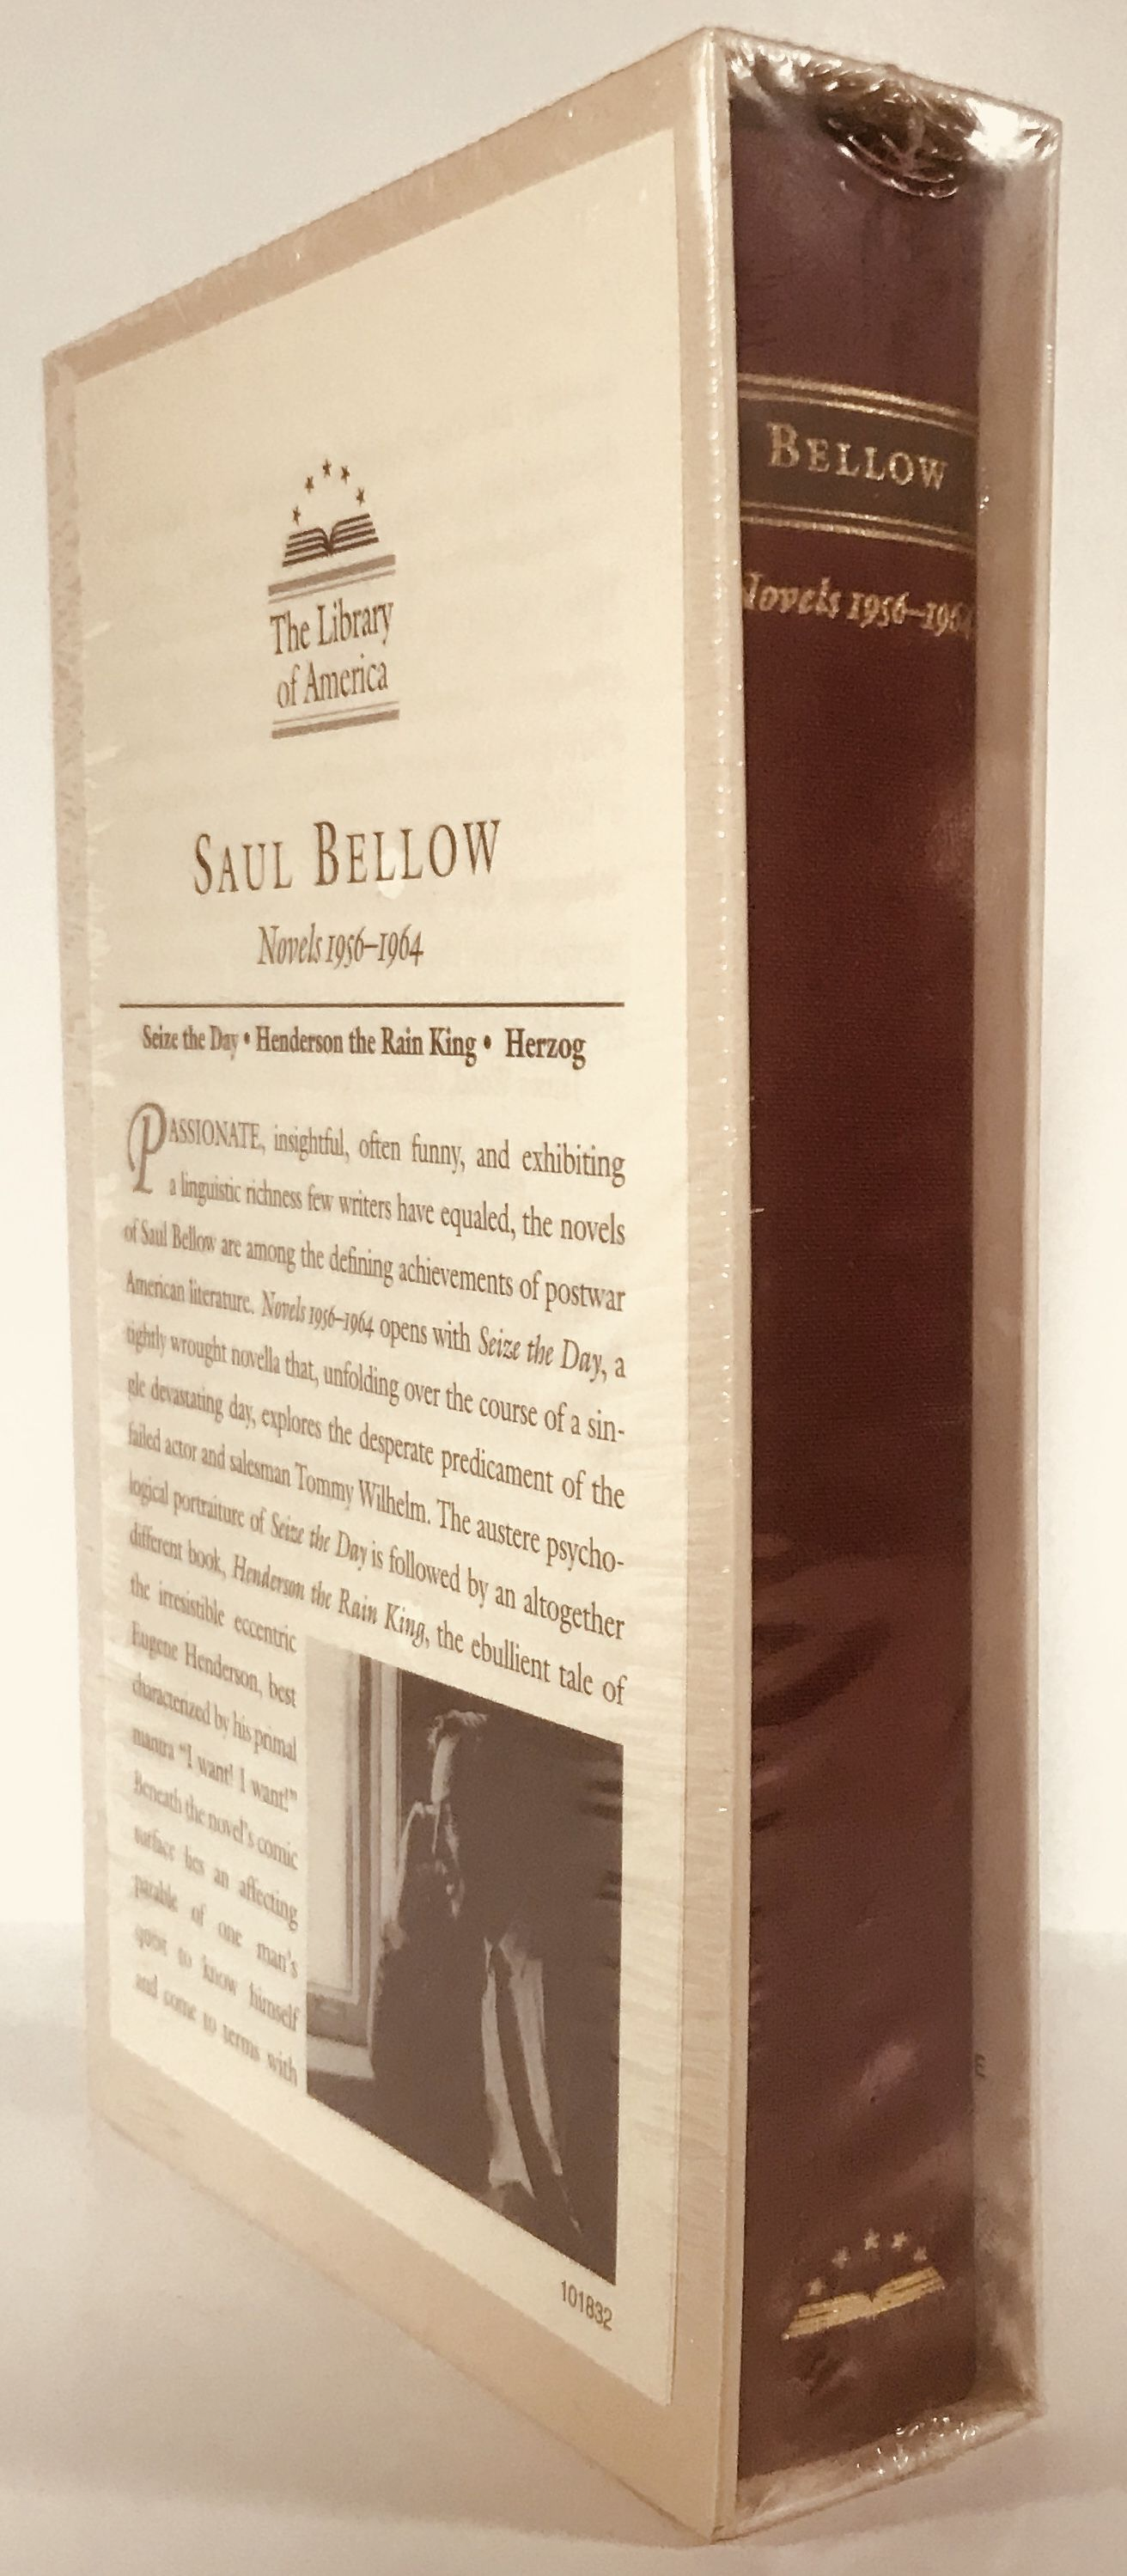 Saul Bellow: Novels 1956-1964: Seize the Day, Henderson the Rain King, Herzog (Library of America), Bellow, Saul